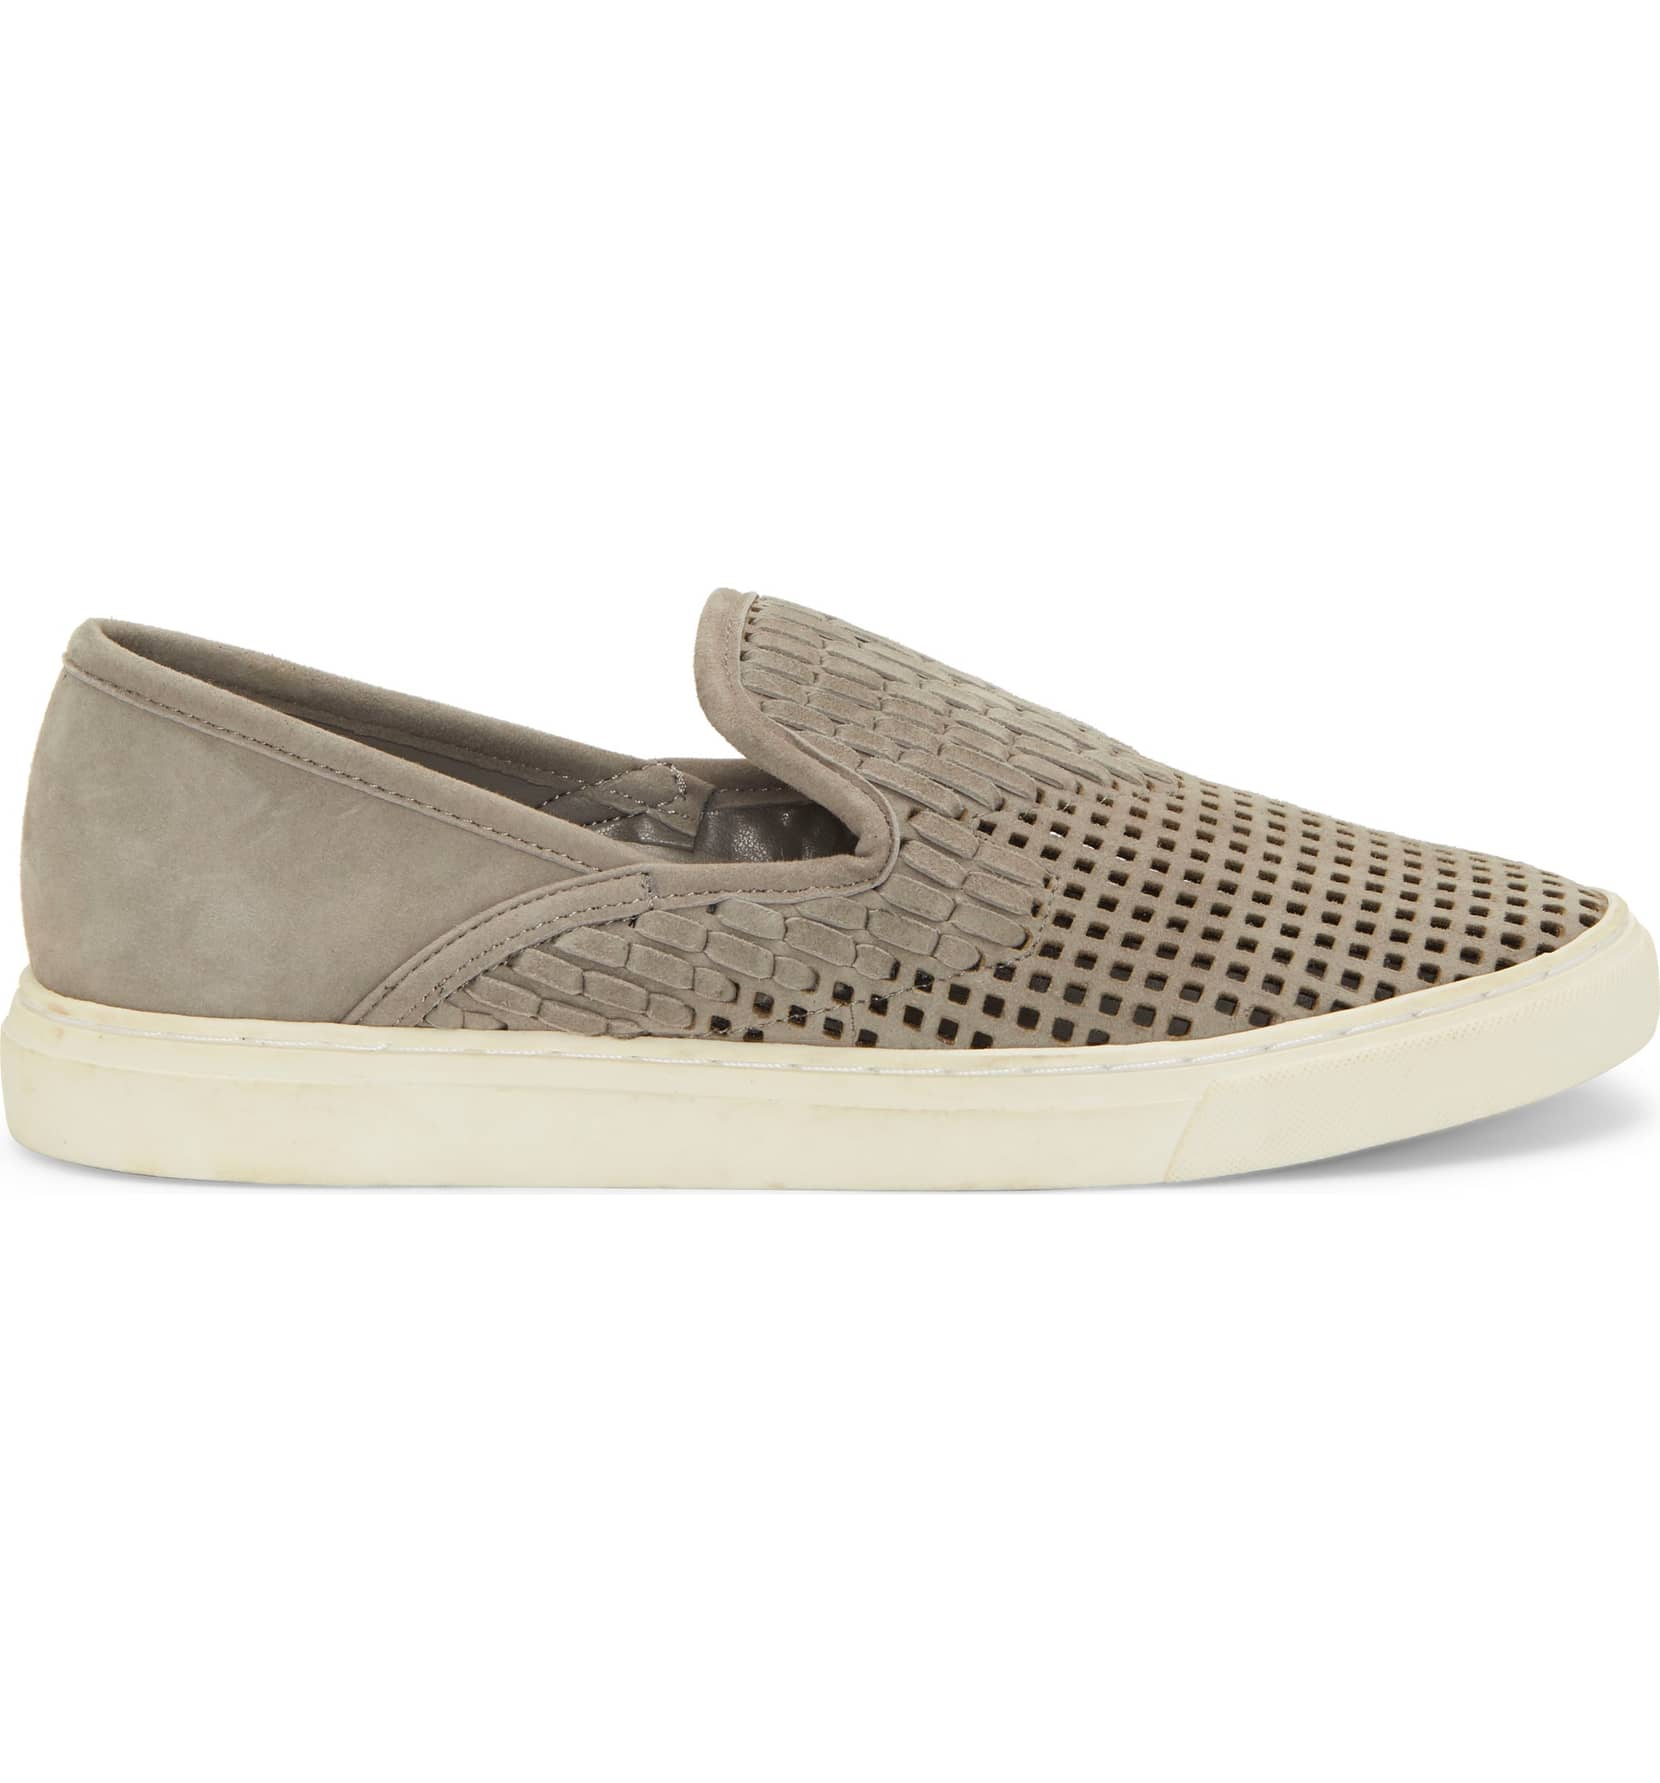 Vince-Camuto-Bristie-Storm-Grey-Leather-Woven-White-Sole-Slip-On-Sneakers thumbnail 42